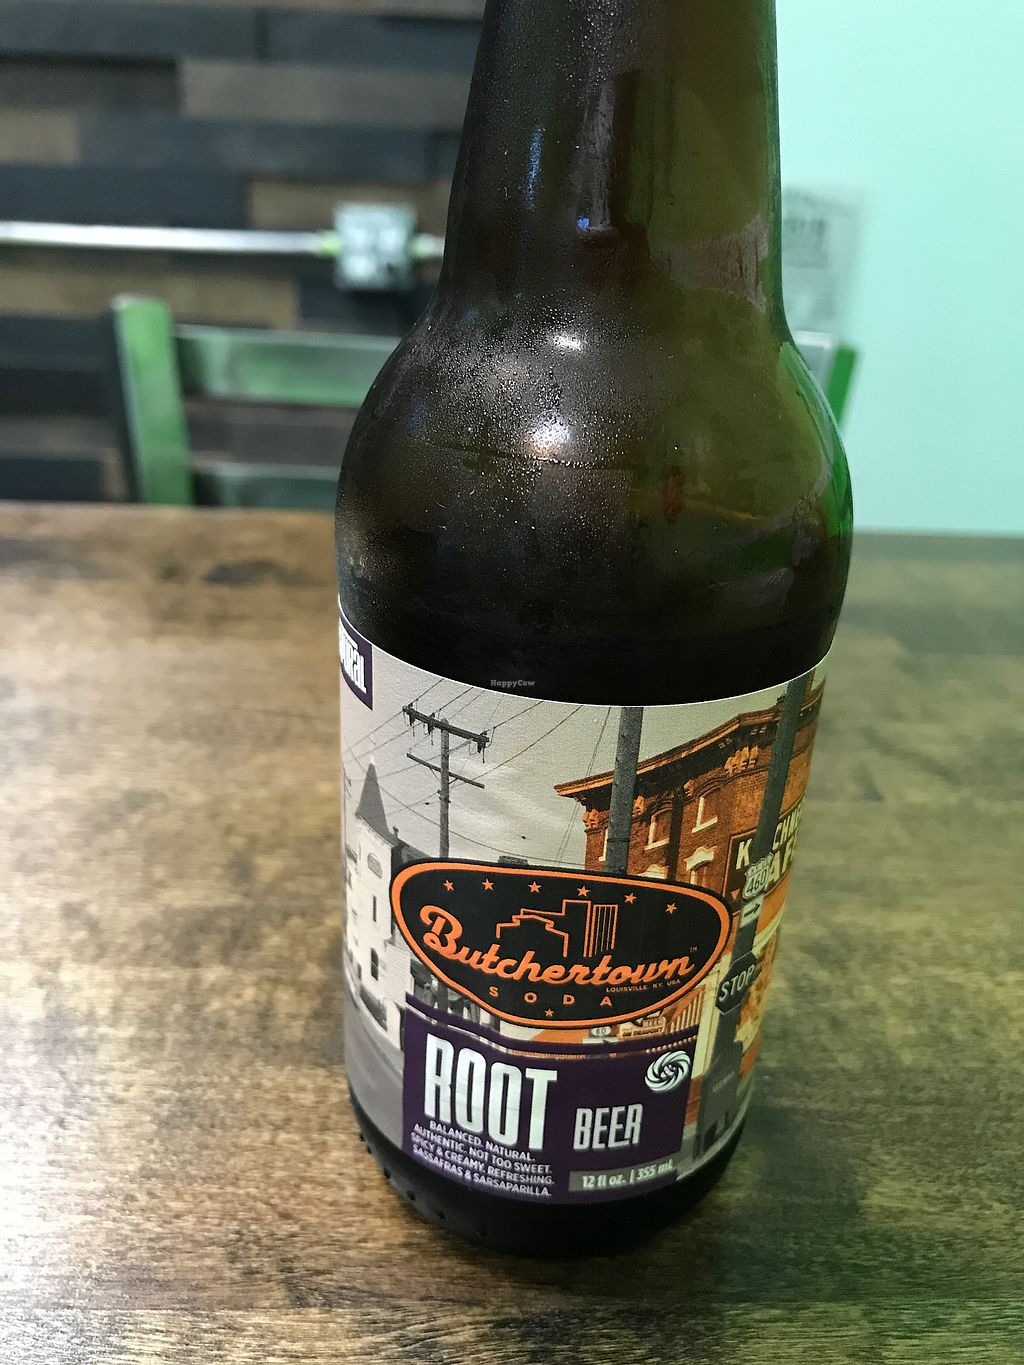 """Photo of Branch Out  by <a href=""""/members/profile/Labylala"""">Labylala</a> <br/>root beer <br/> July 6, 2017  - <a href='/contact/abuse/image/88667/277030'>Report</a>"""